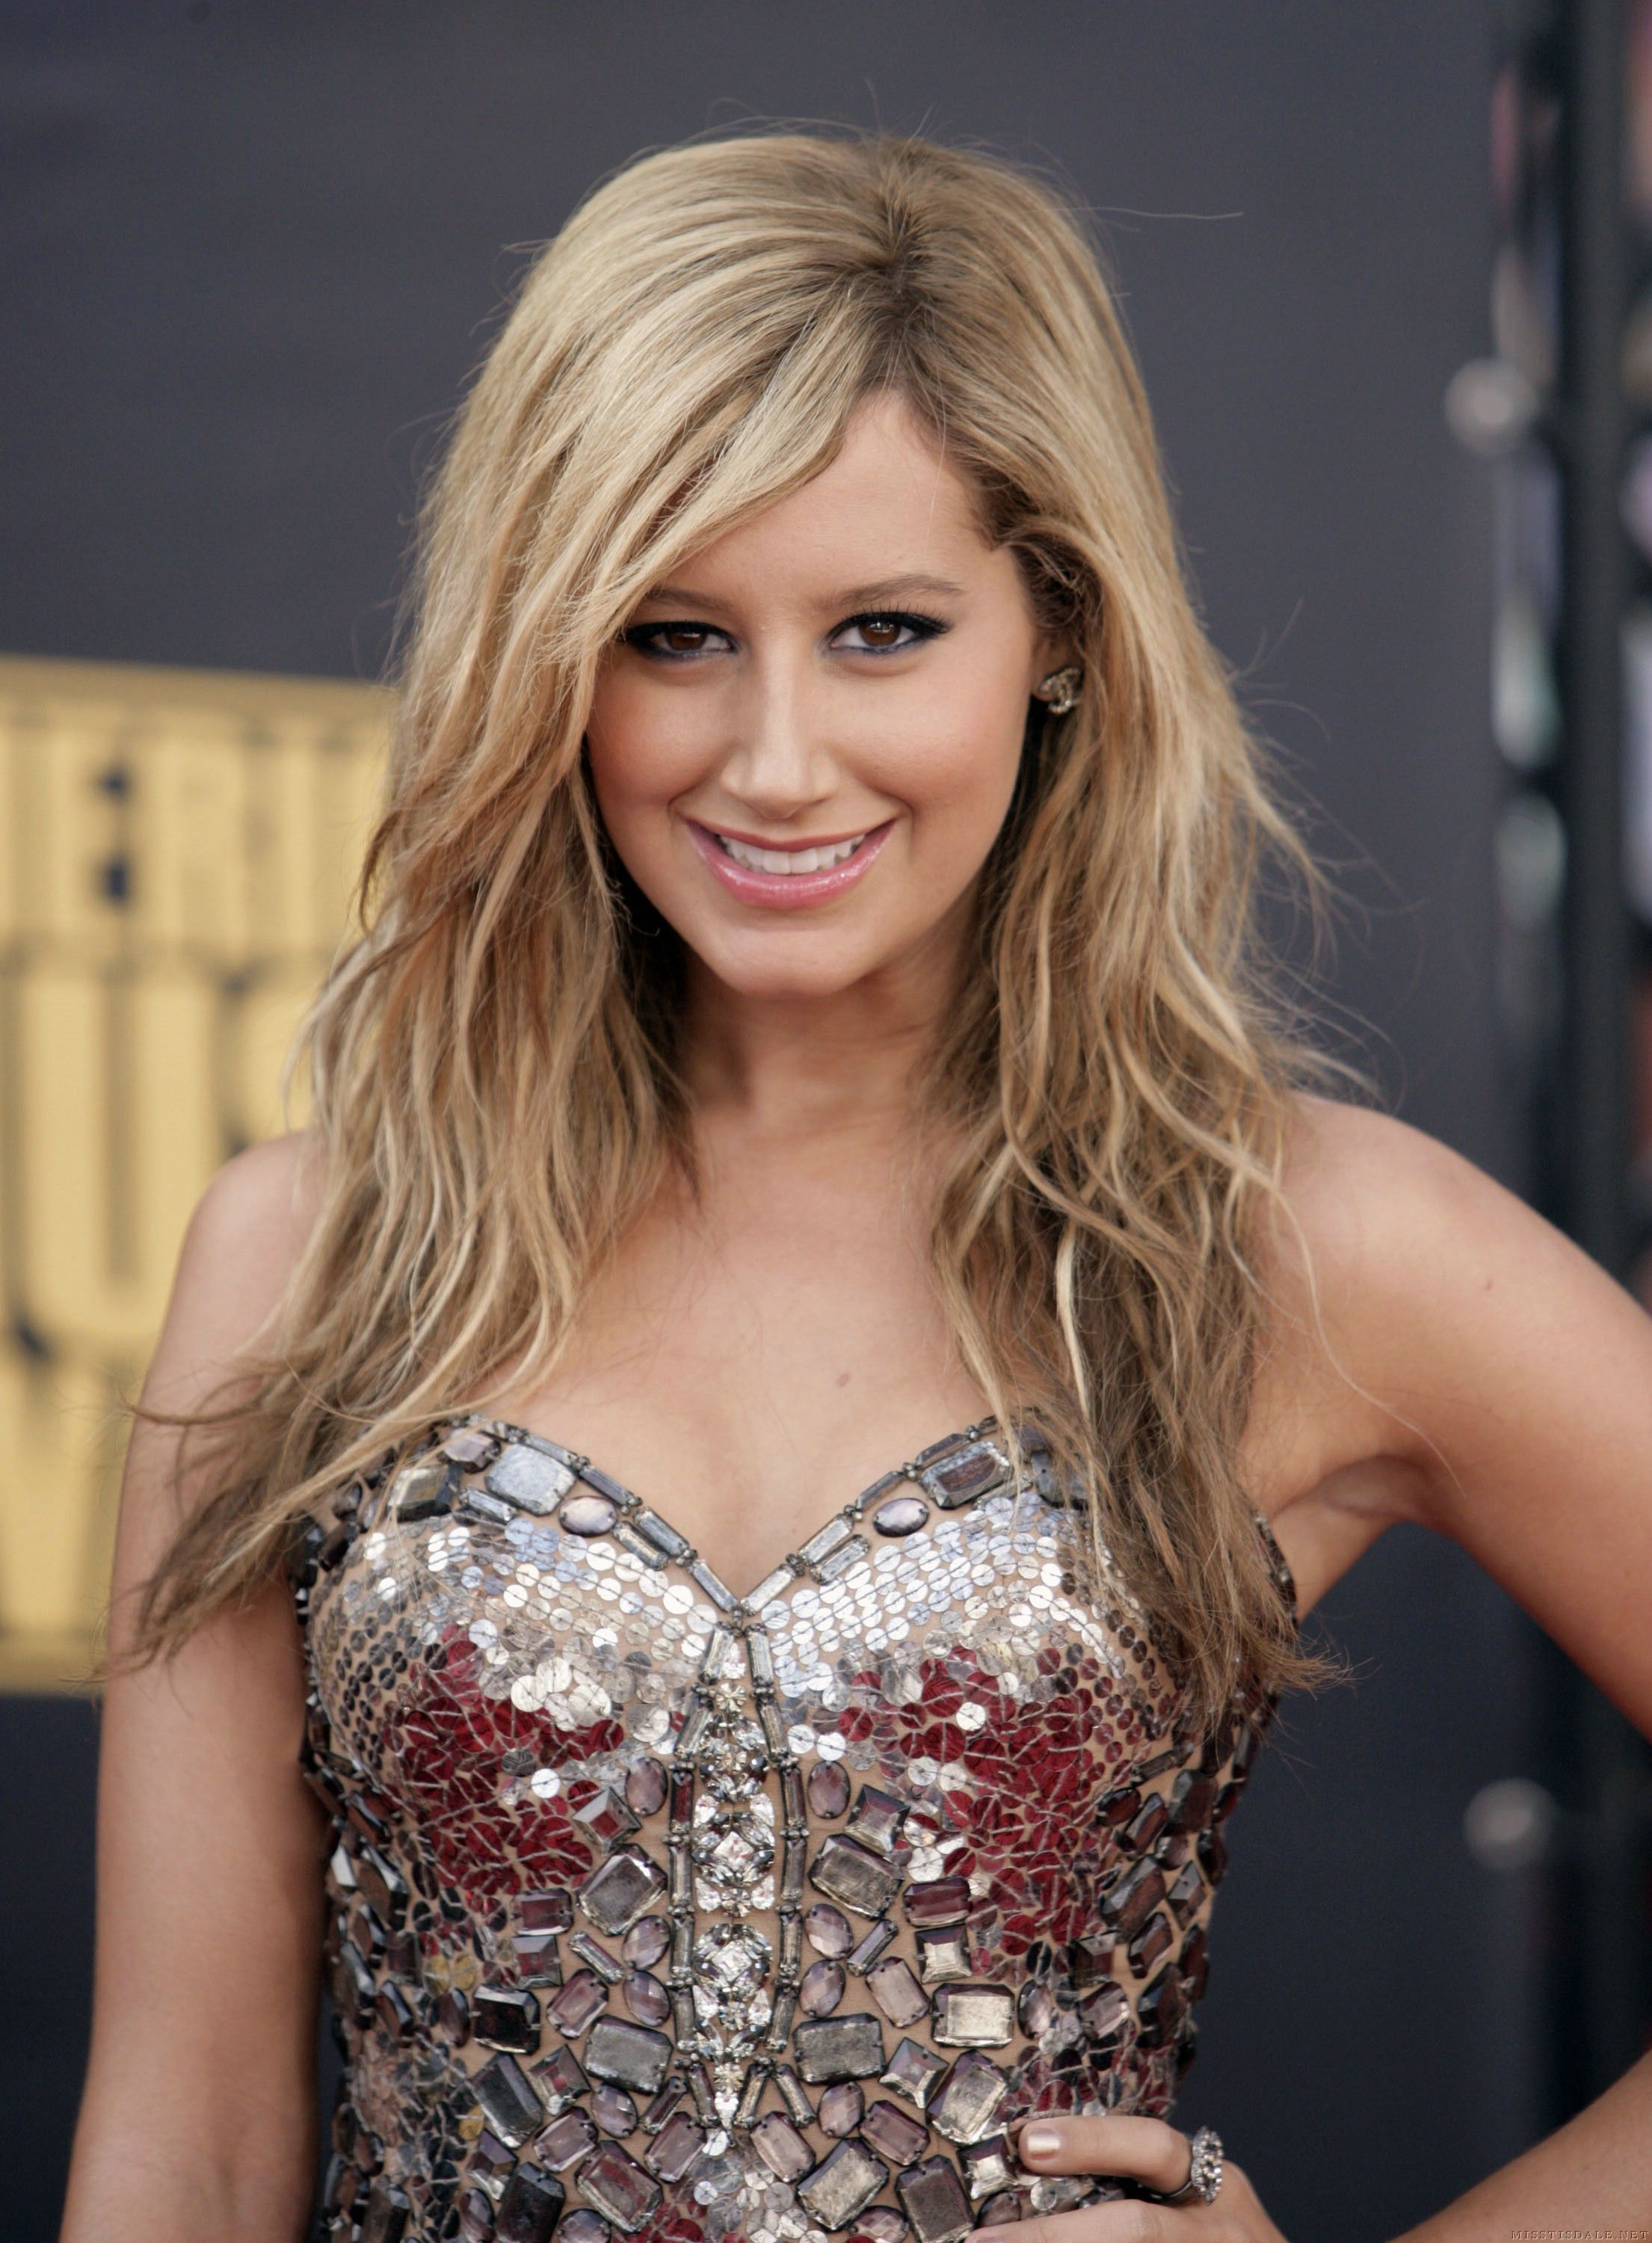 picture Cute Braided Hairstyles: Ashley Tisdale Hair